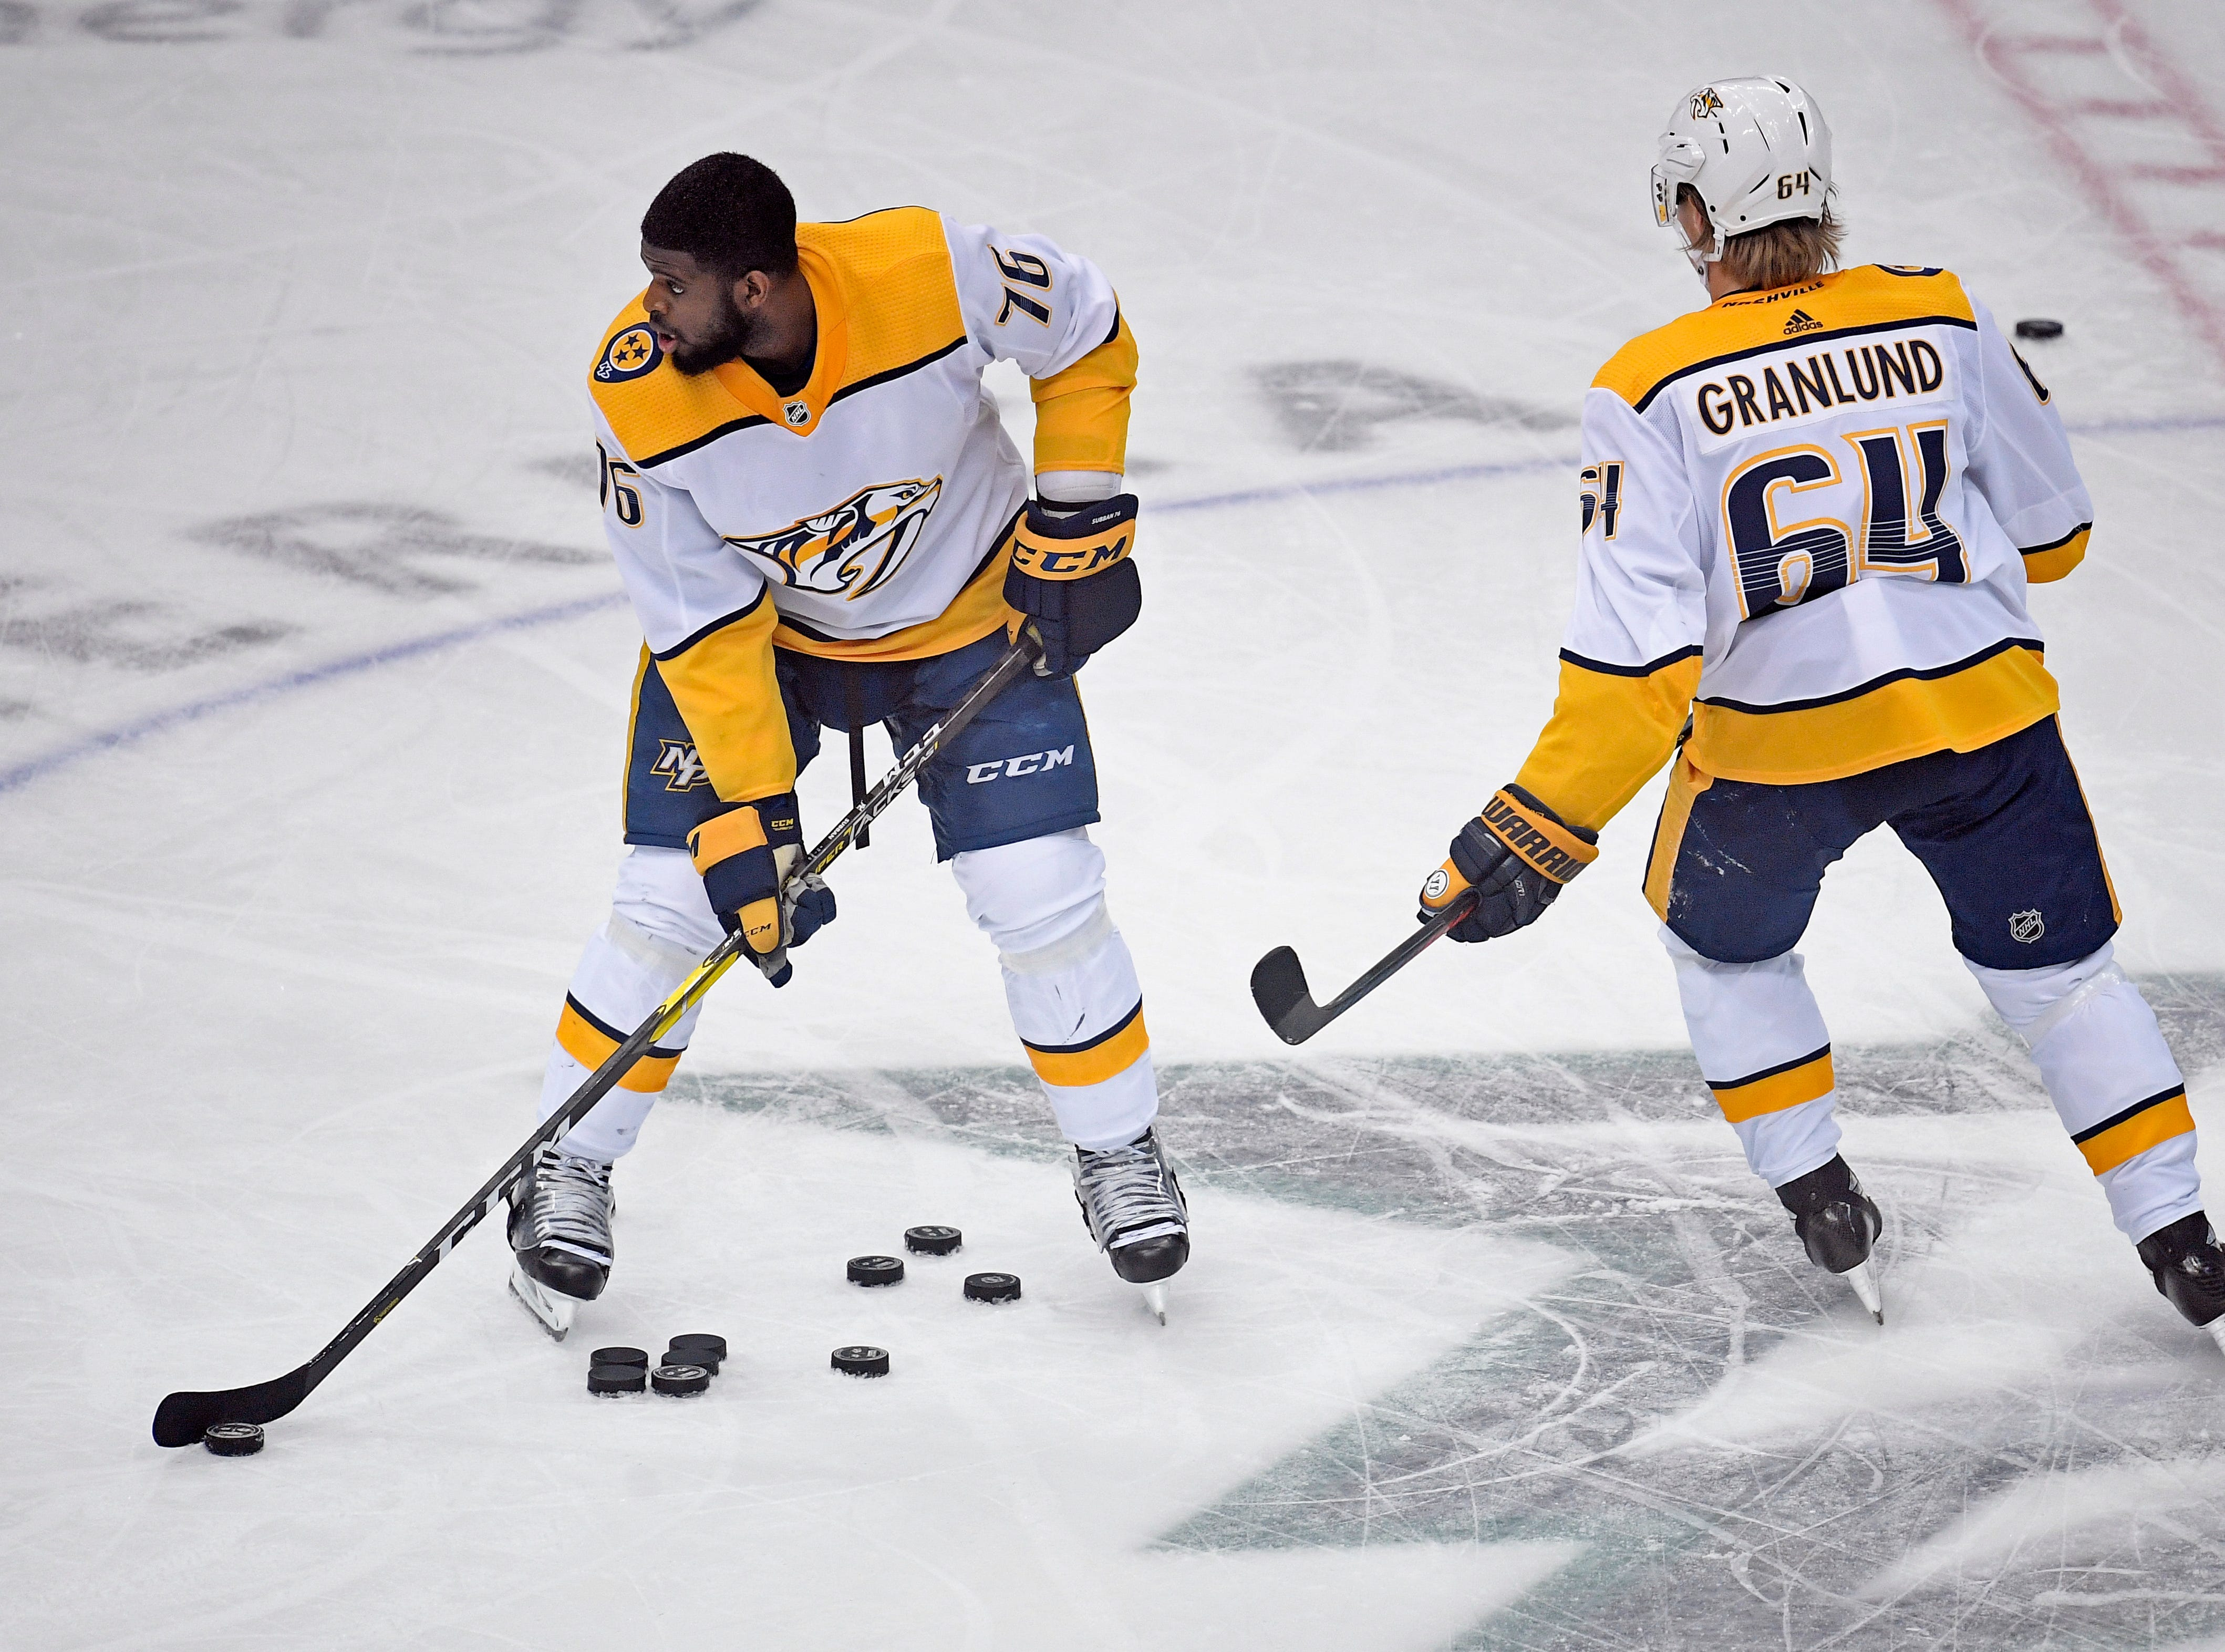 Nashville Predators defenseman P.K. Subban (76) and center Mikael Granlund (64) warm up before the divisional semifinal game against the Dallas Stars at the American Airlines Center in Dallas, Texas, Monday, April 22, 2019.